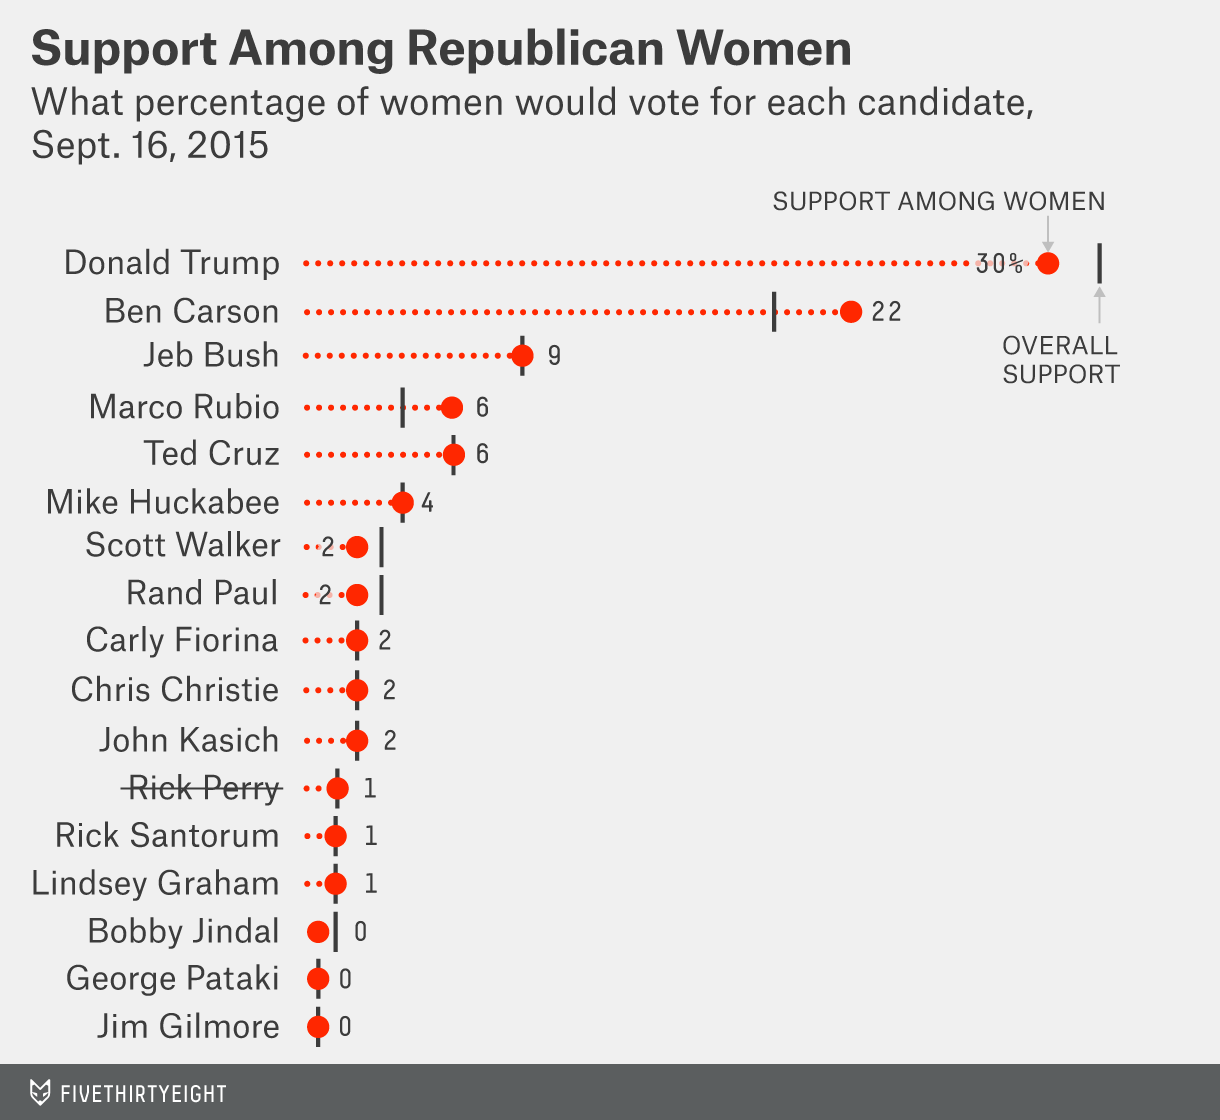 Support among Republican women